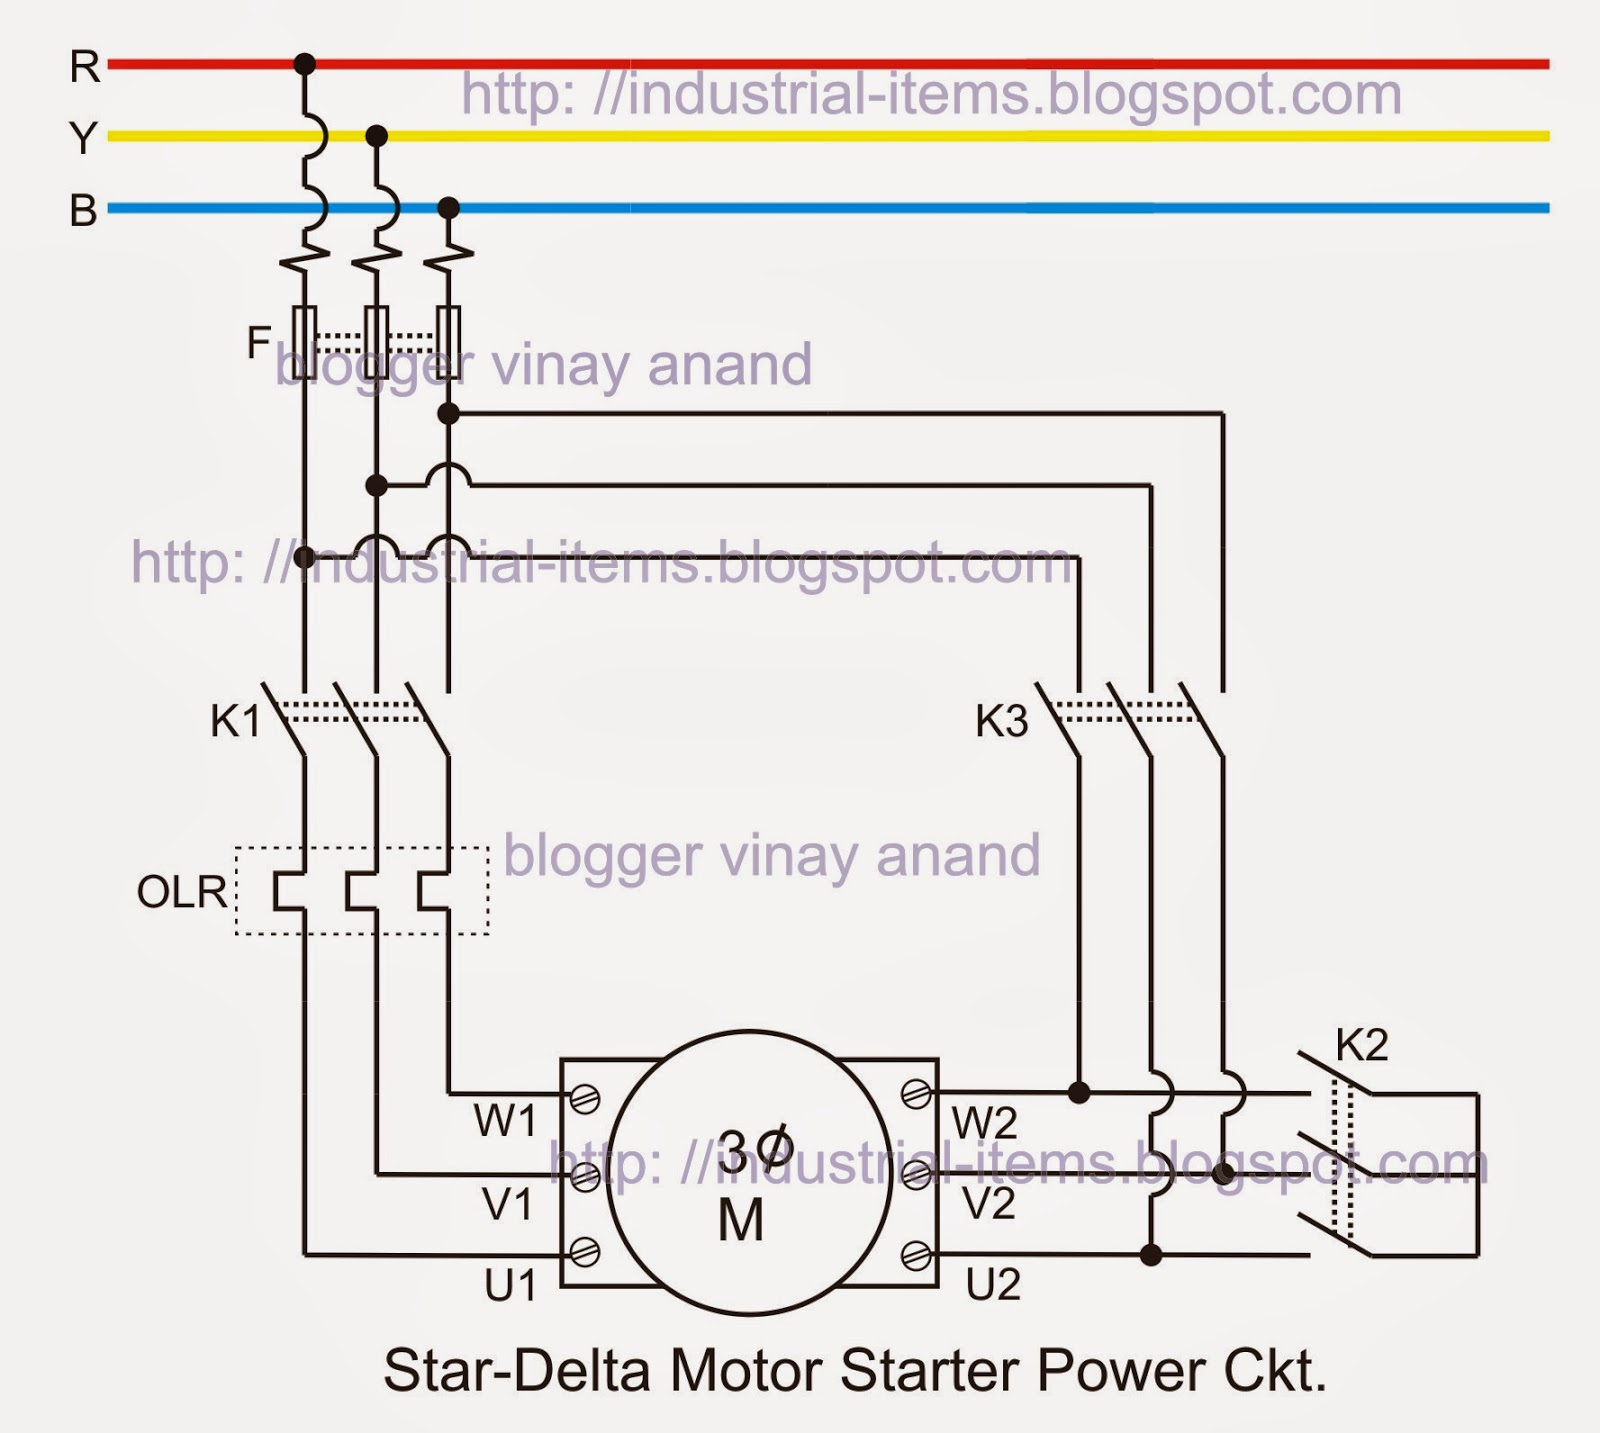 Star+Delta+power+Ckt. gk, current affairs, tutorials & articles star delta starter theory star delta starter control wiring diagram with timer pdf at bayanpartner.co